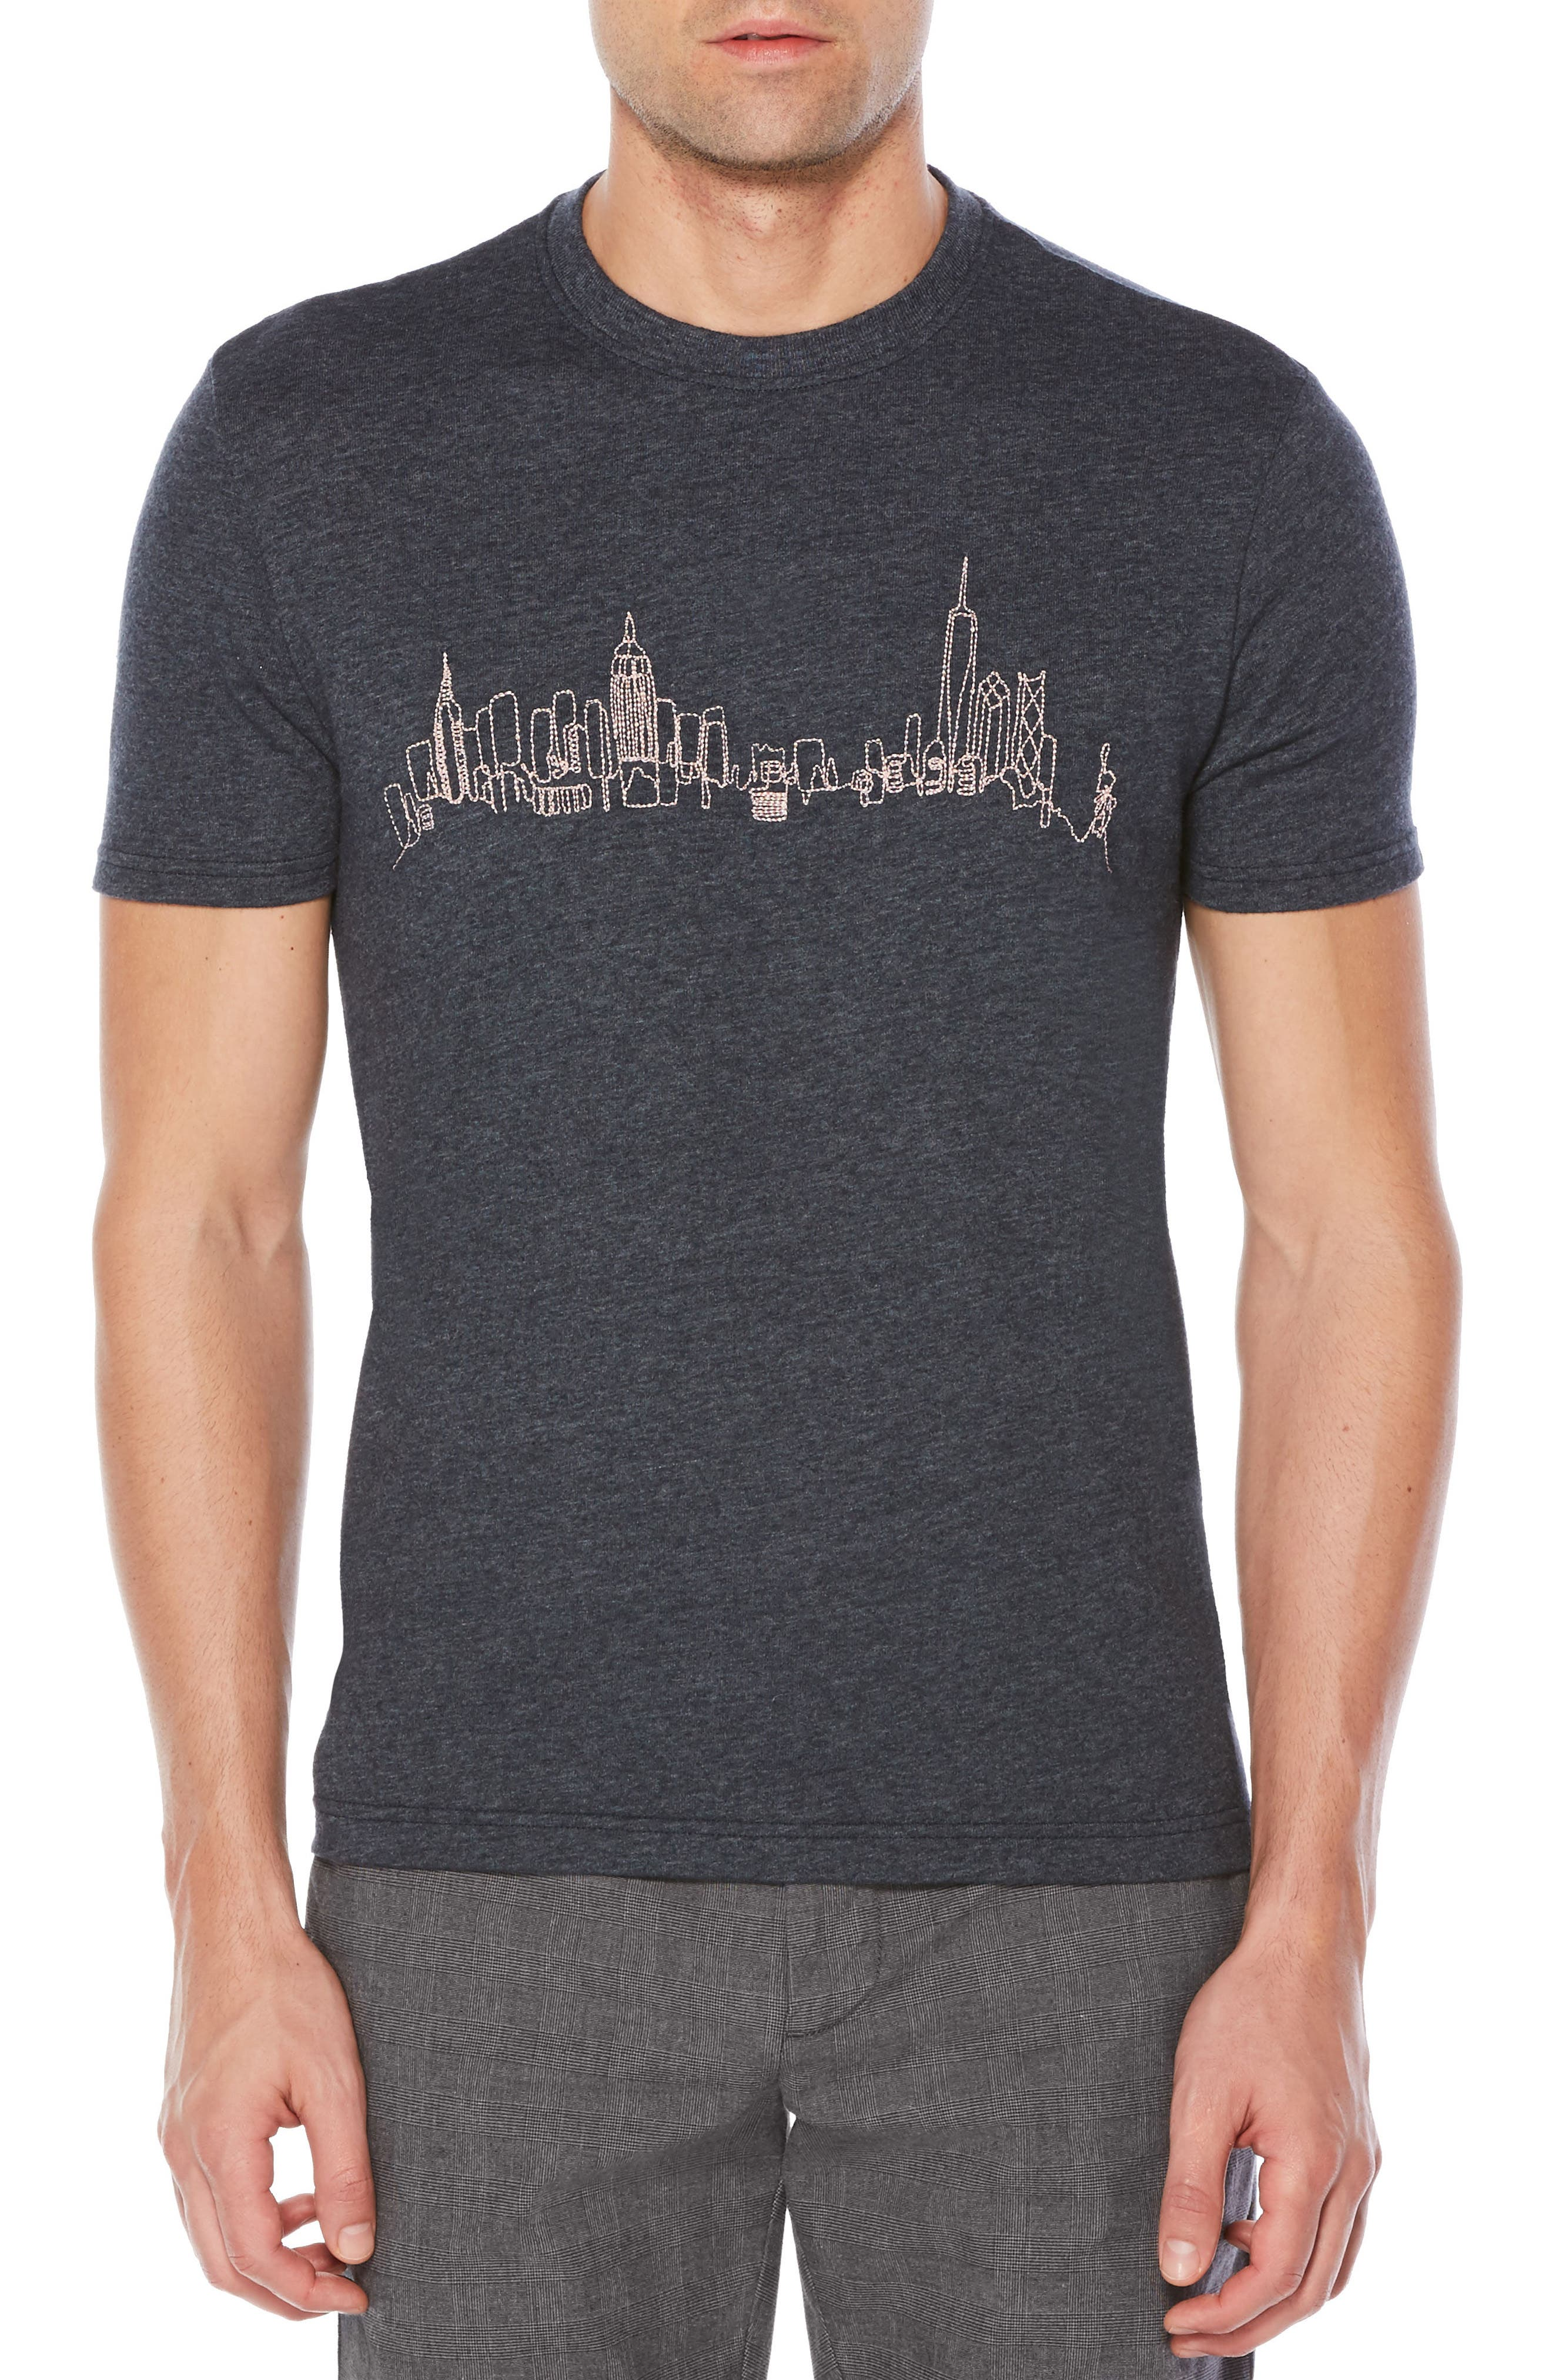 Alternate Image 1 Selected - Original Penguin Embroidered NYC Skyline T-Shirt